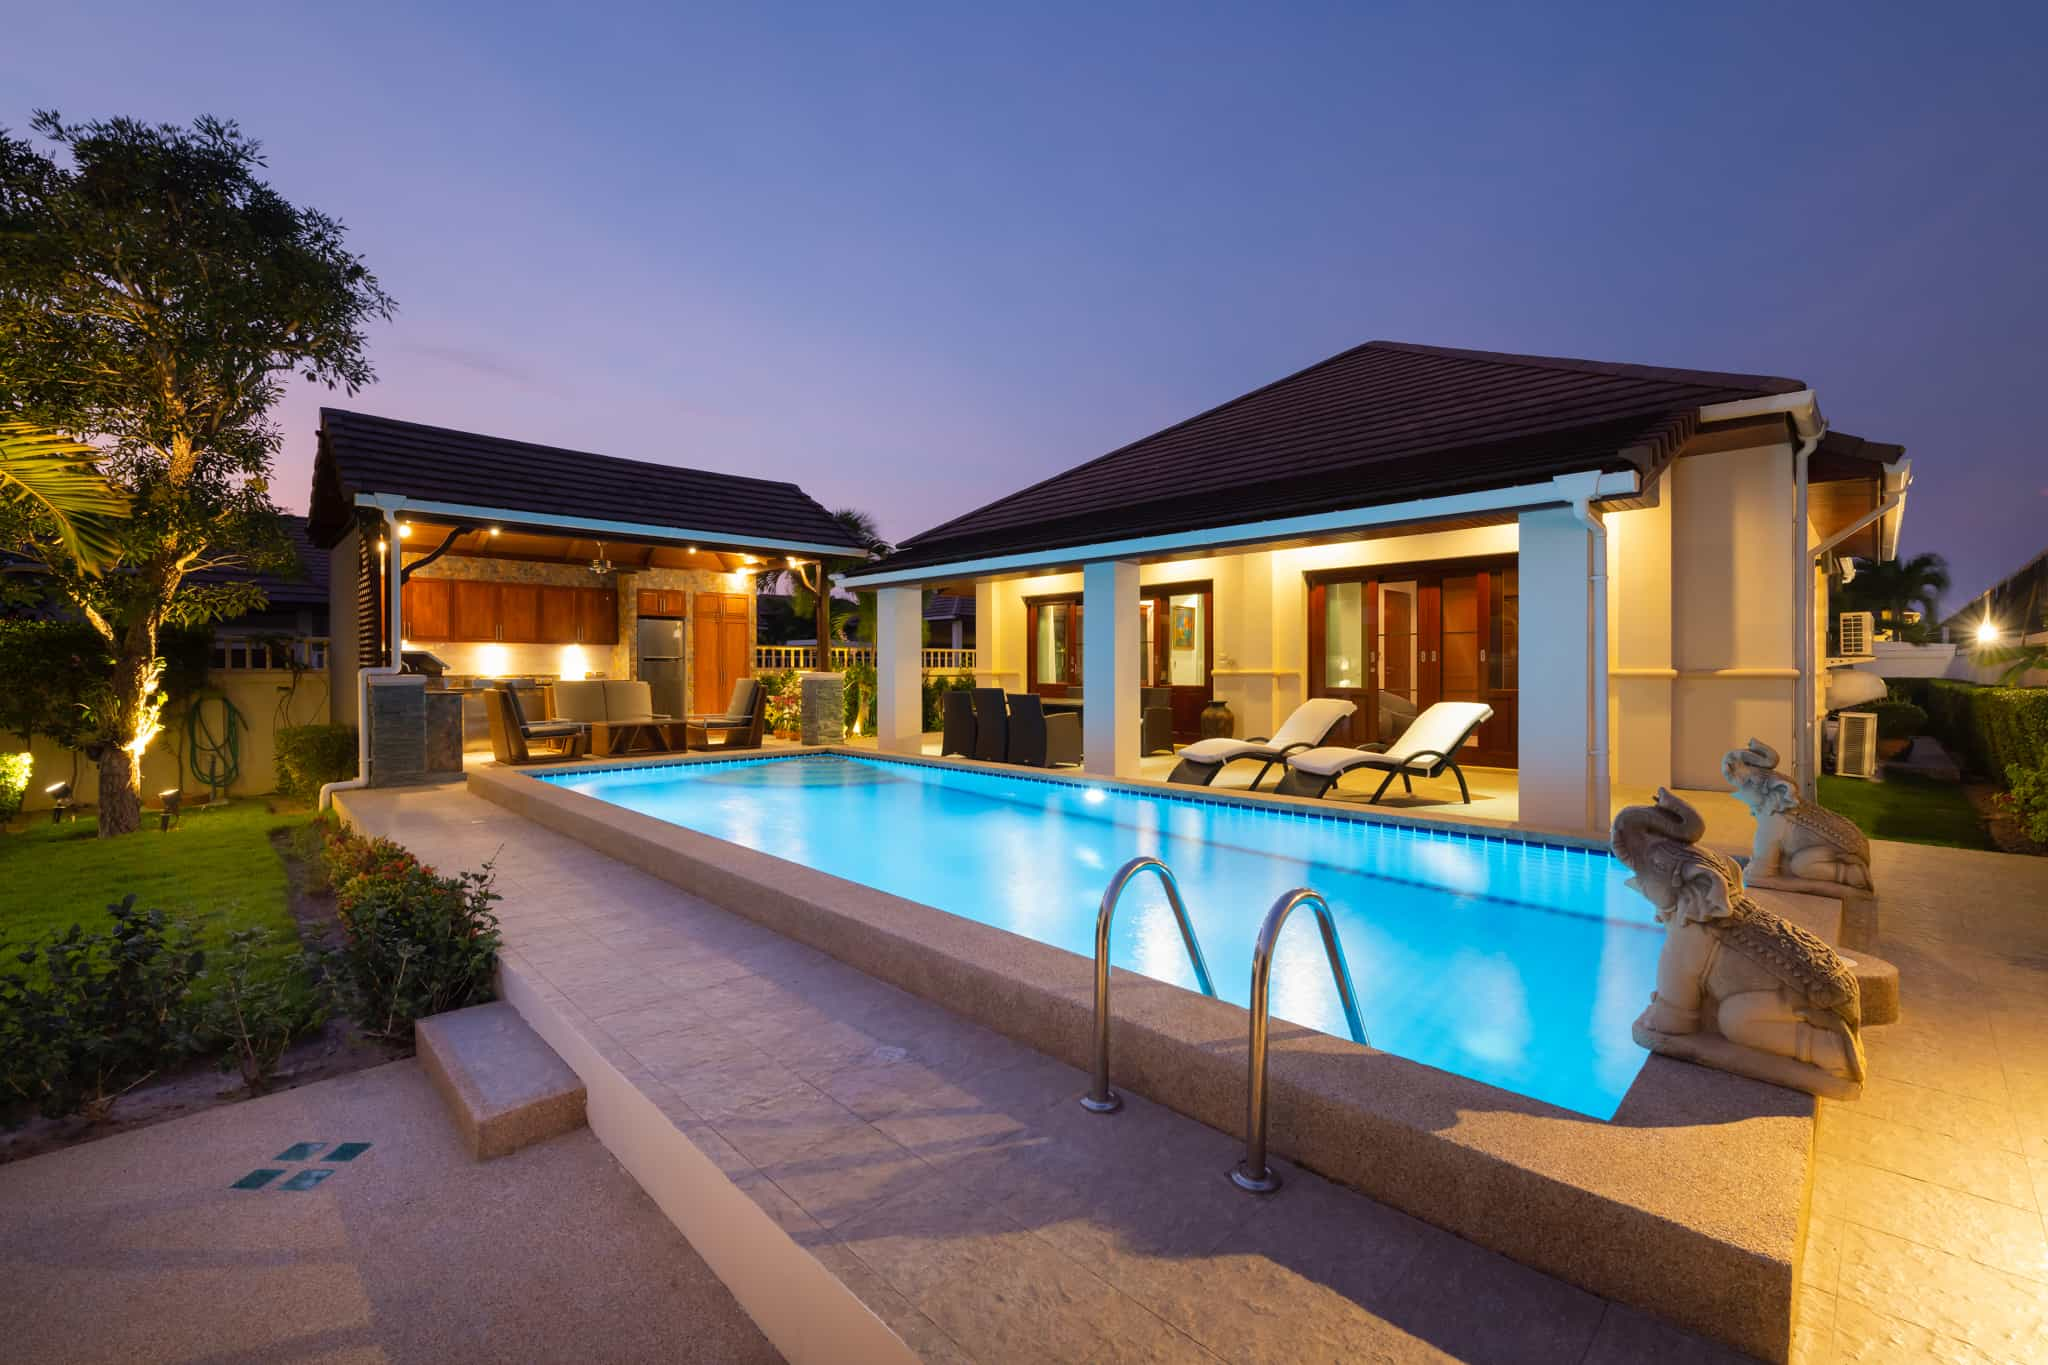 Balinese Style Pool Villa in Hua Hin at Hillside Hamlet5